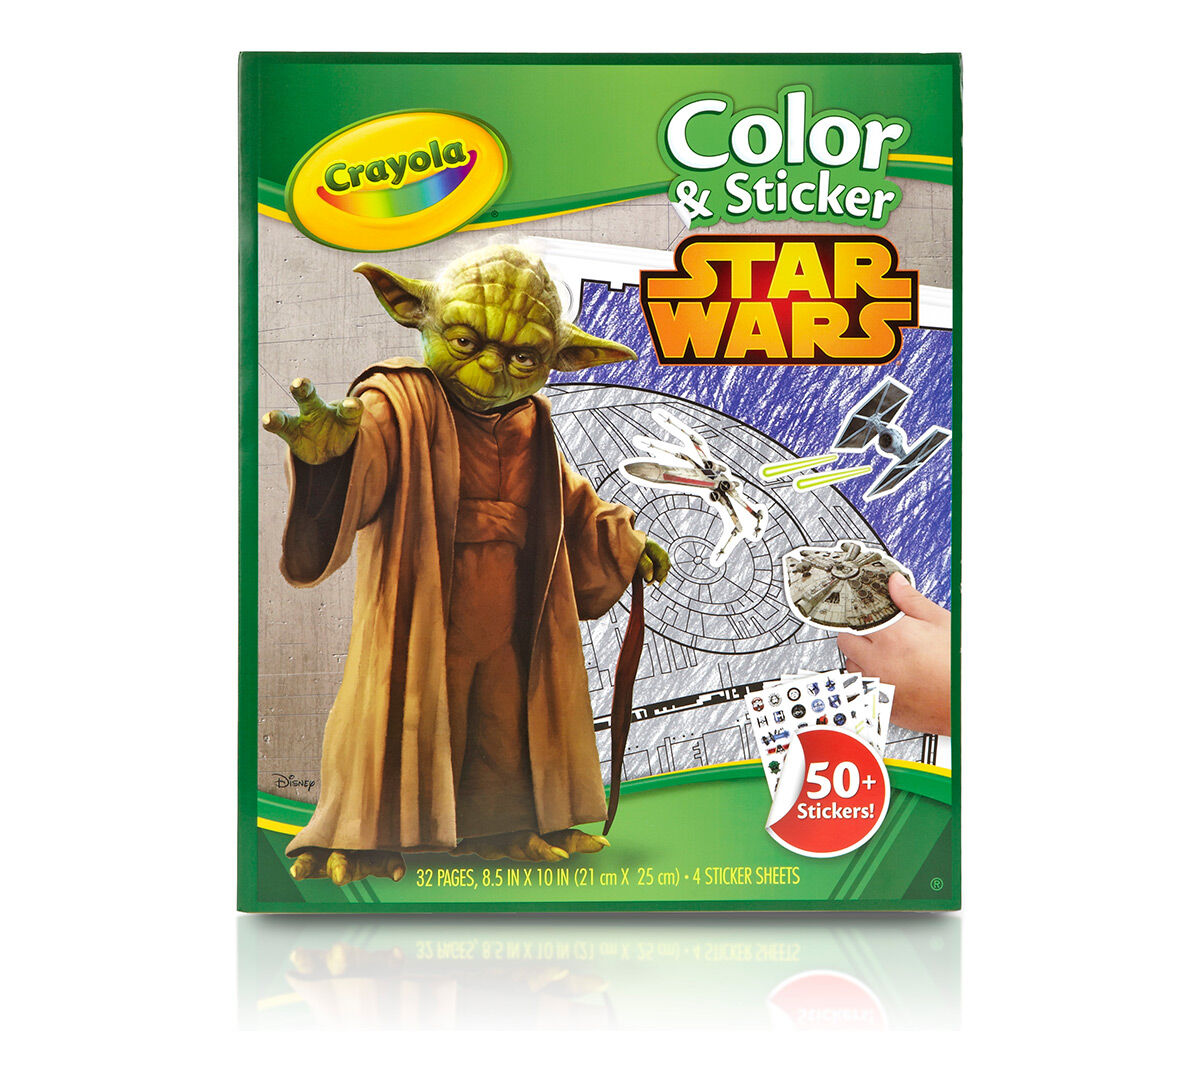 Crayola Color & Sticker Book – Star Wars